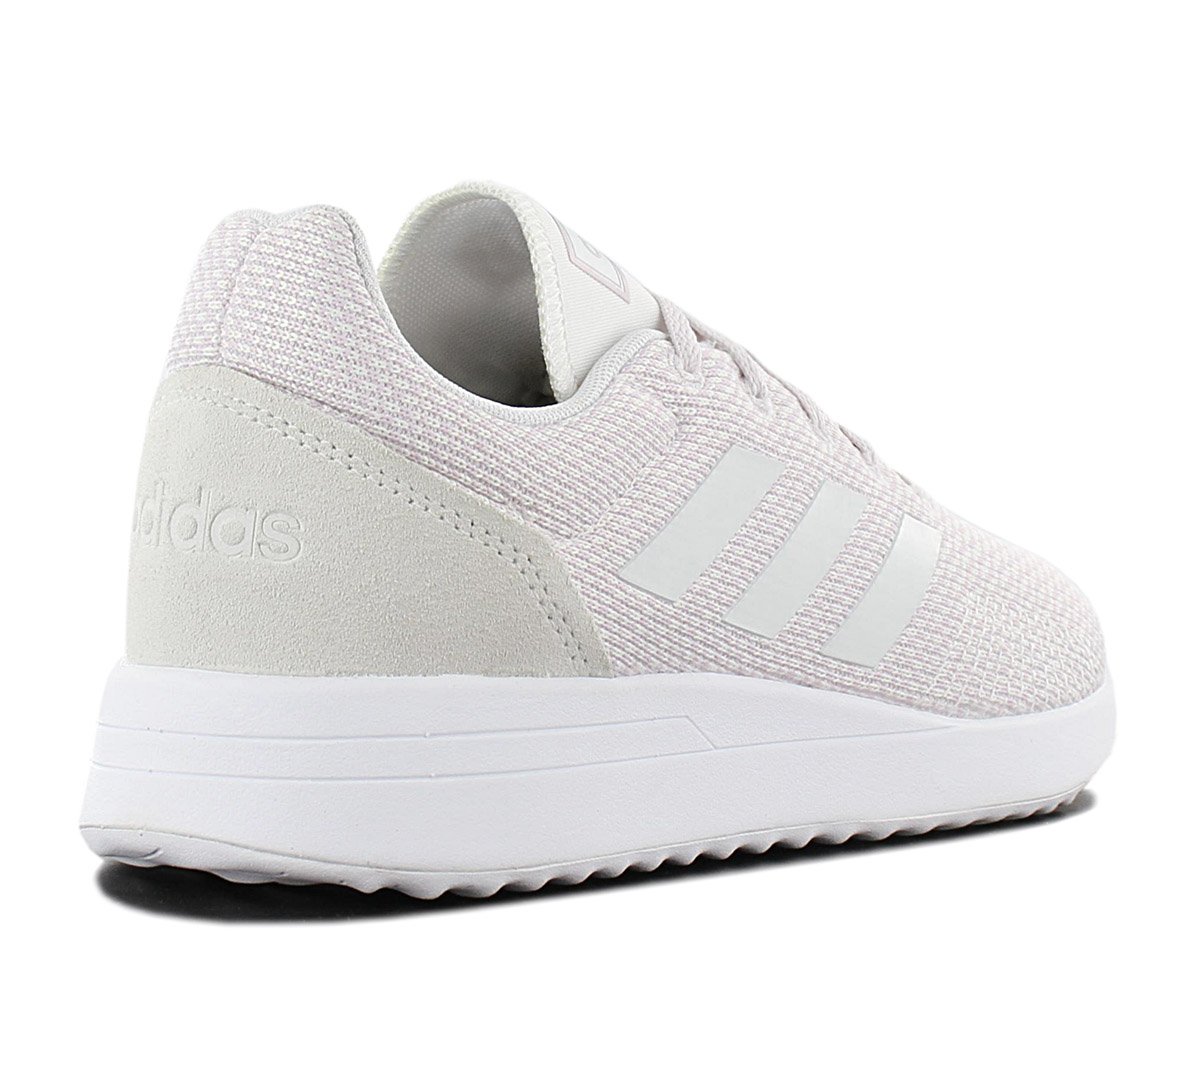 ADIDAS CORE DAMEN Schuhe RUN70S F34341 Sneaker Turnschuhe Rose Runner Rosa SALE